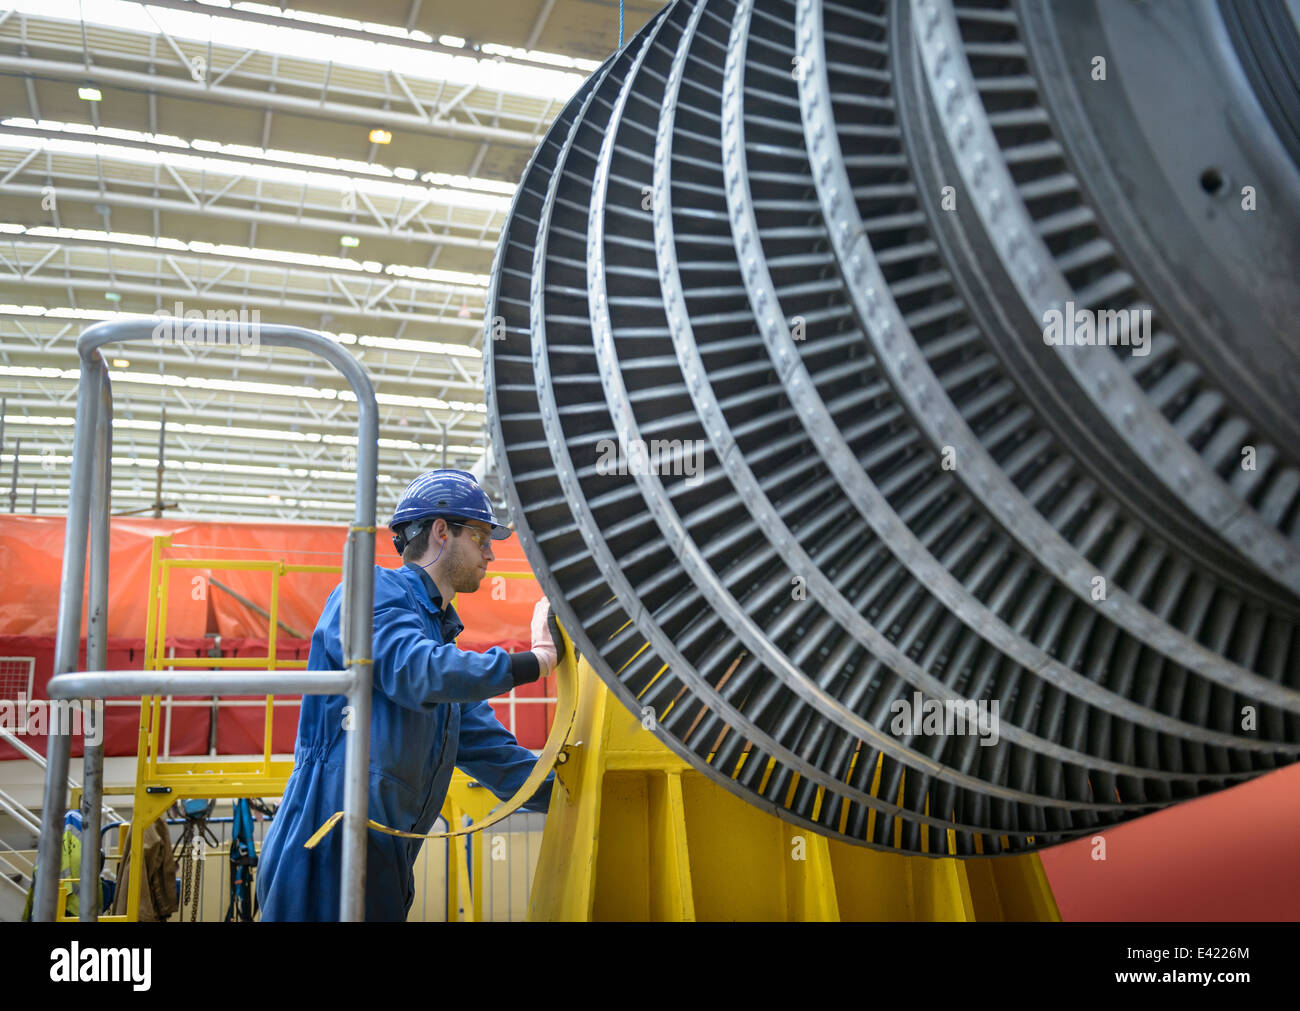 Engineer inspecting turbine during power station outage - Stock Image